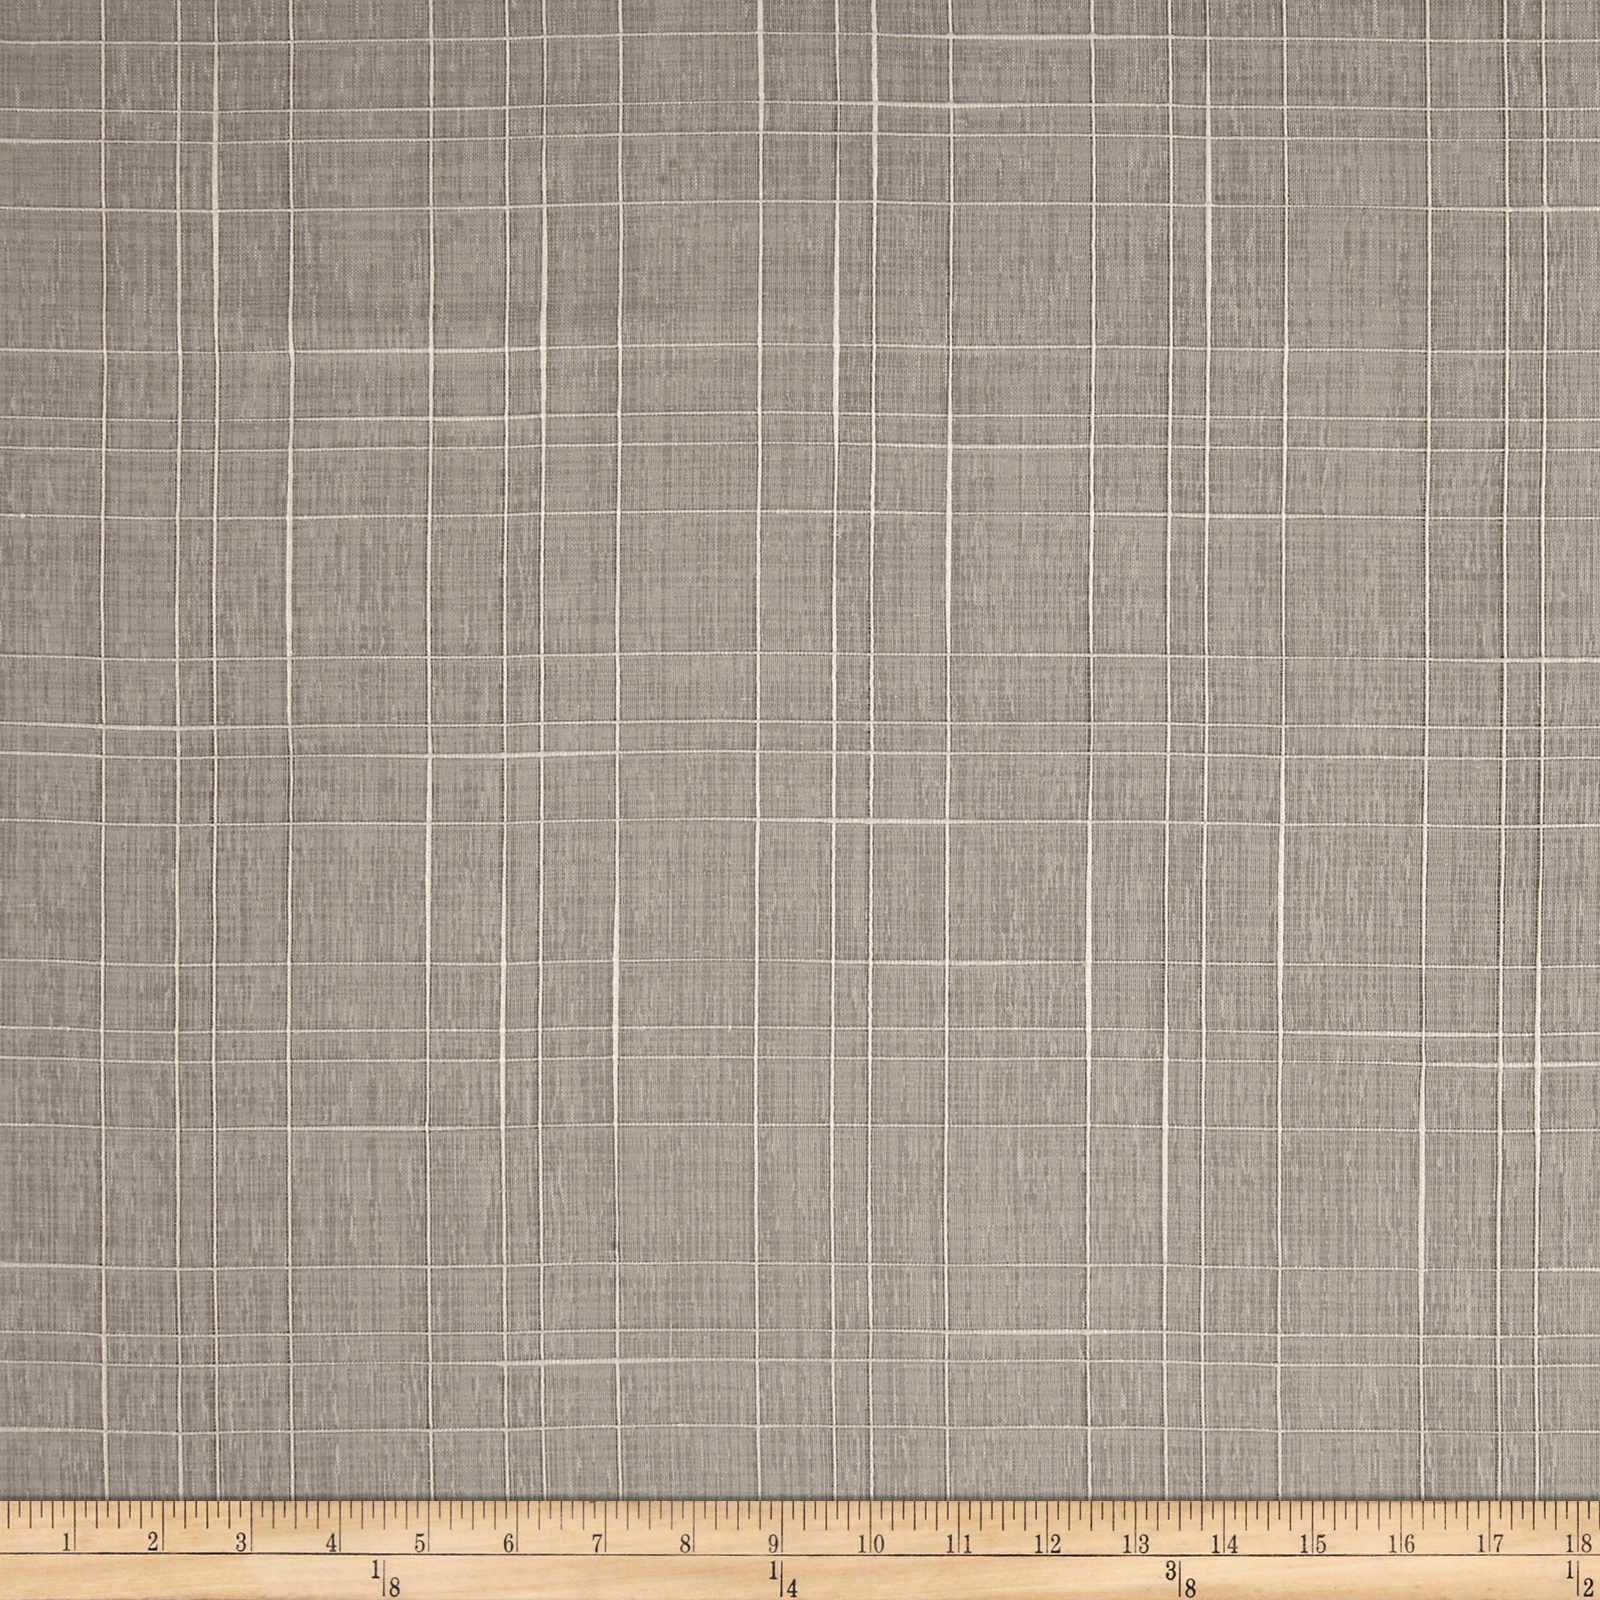 Richloom Farmhouse Drapery Lining Sheers Silver Fabric by TNT in USA